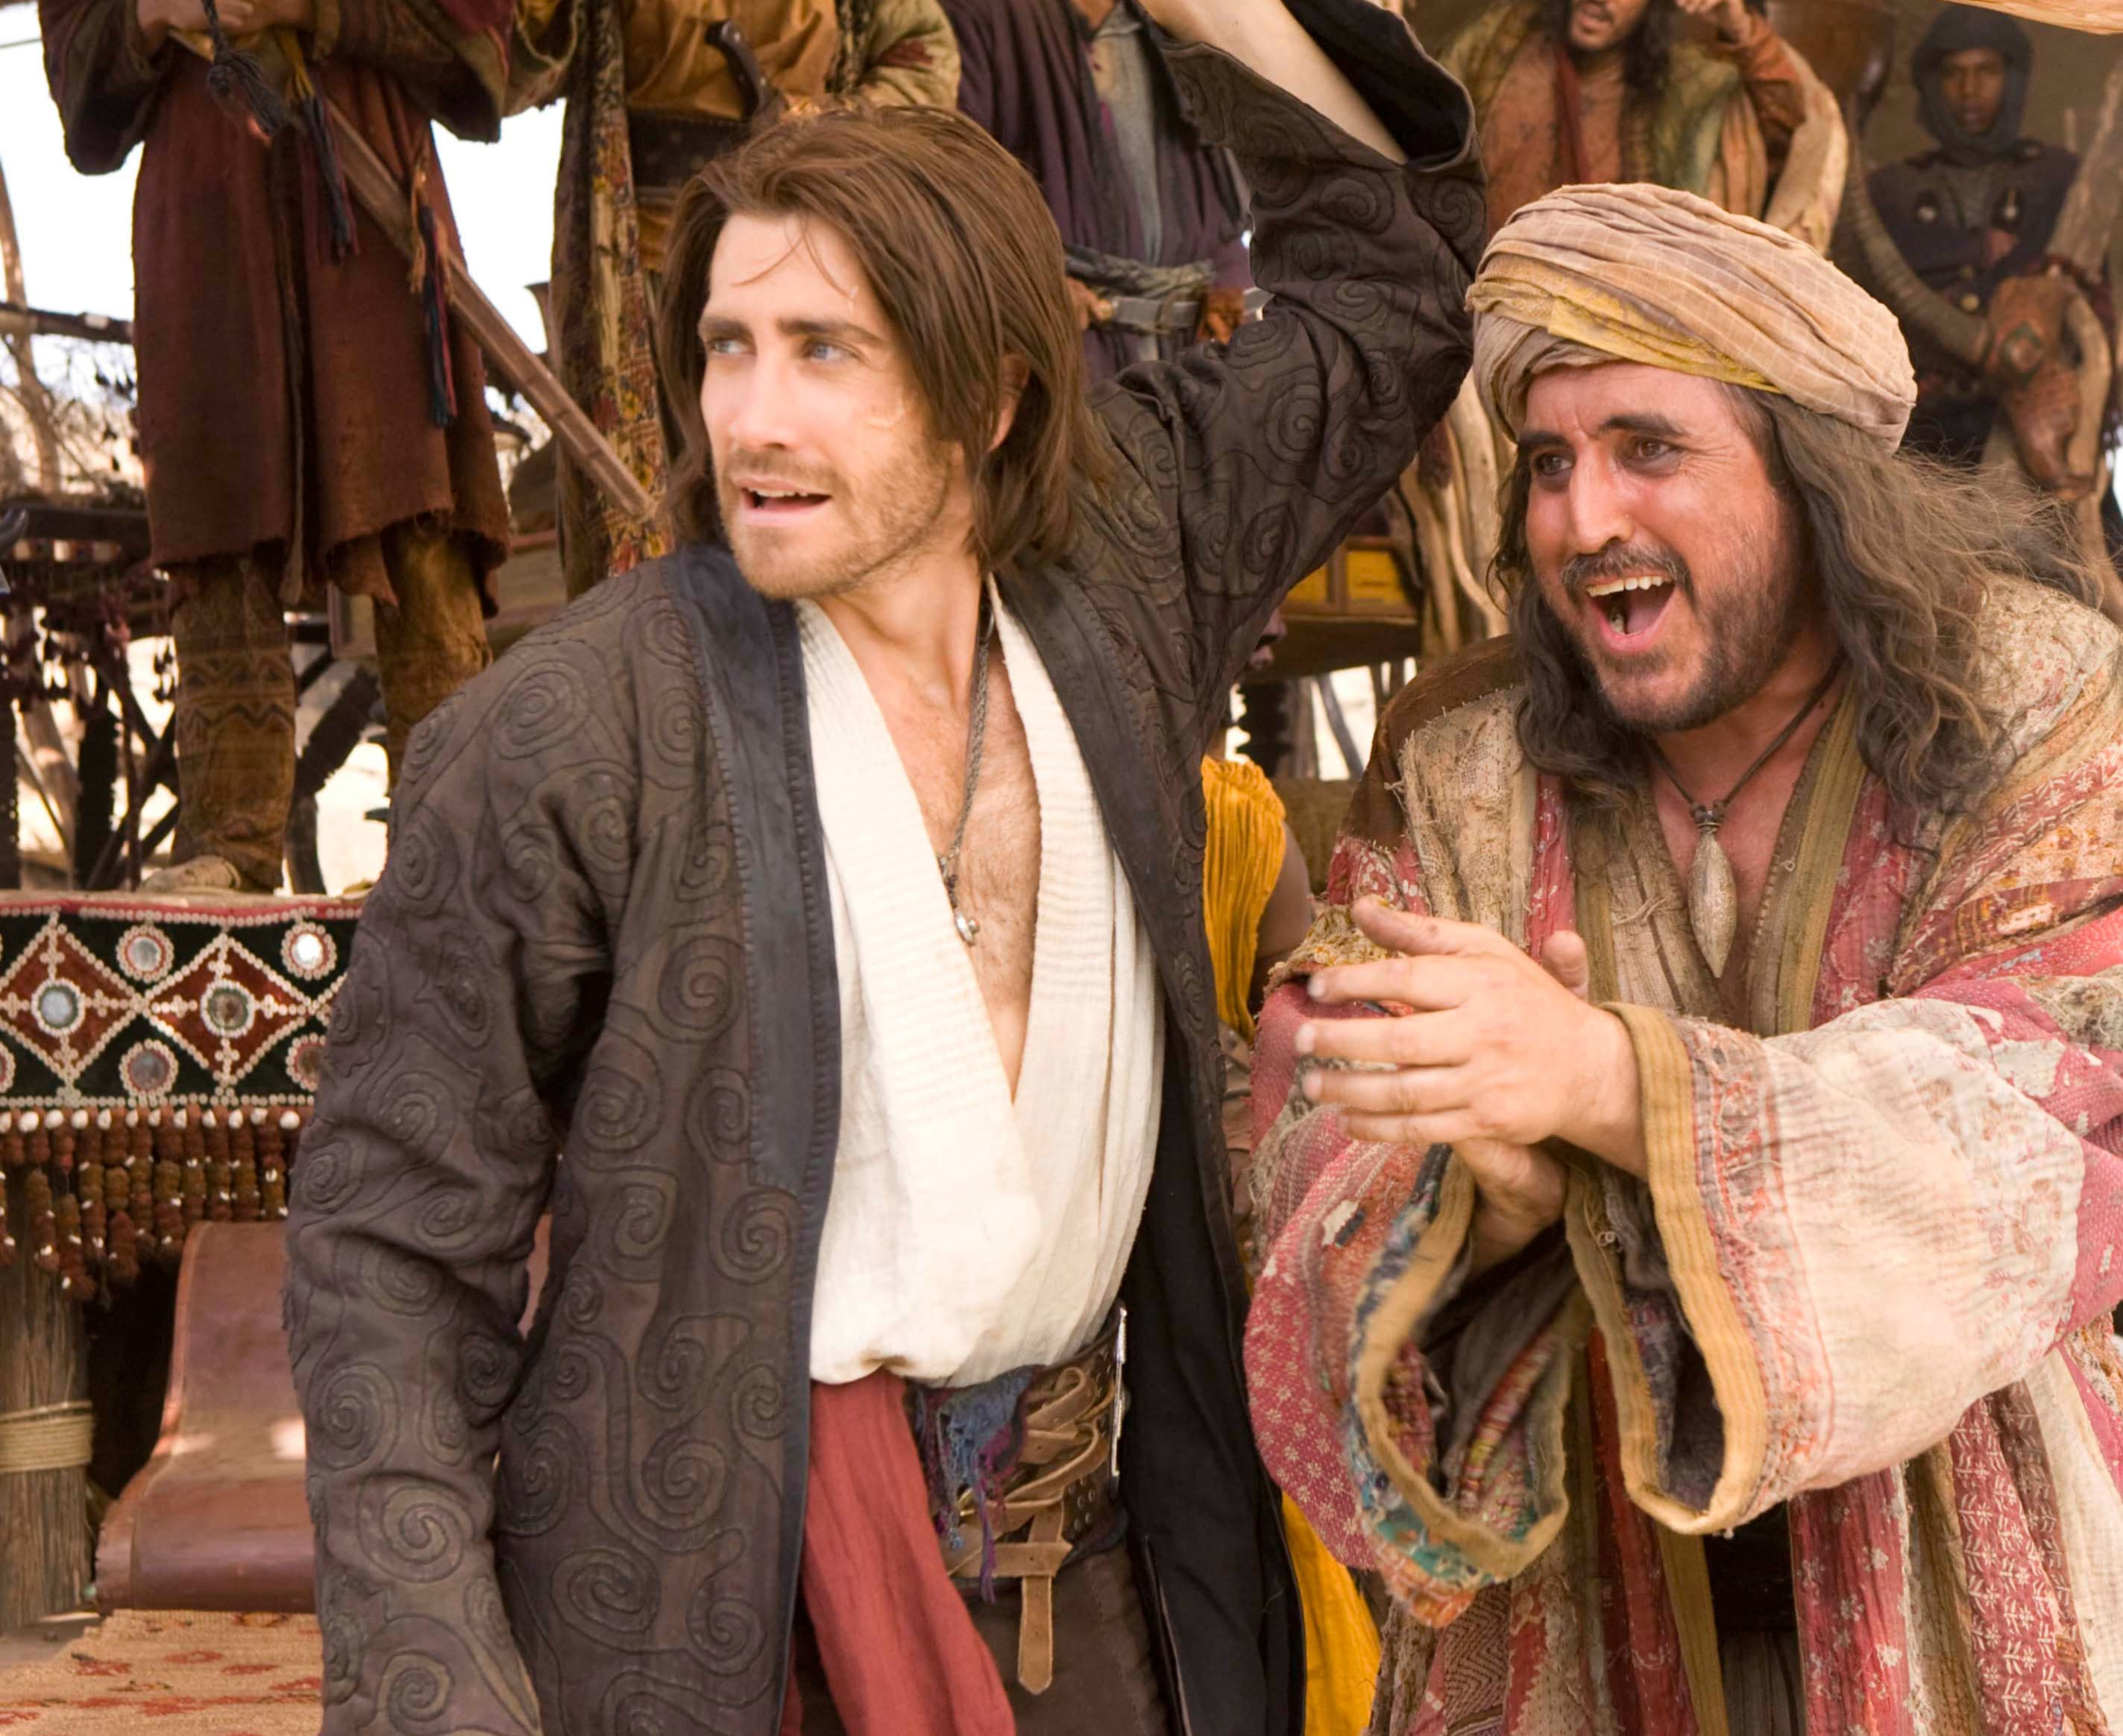 Jake Gyllenhaal's character Dastan stands next to Alfred Molina, who plays Sheik Amar